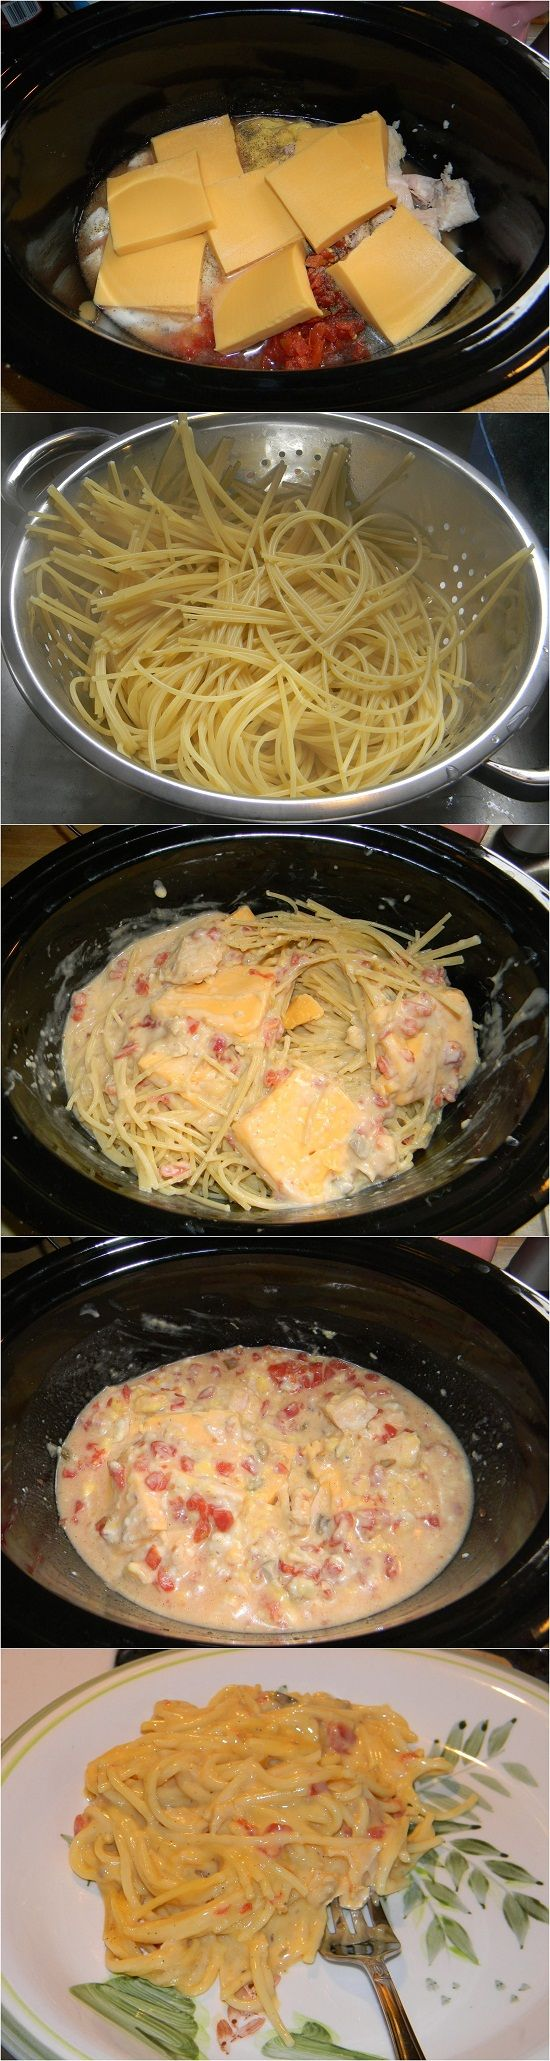 Crock pot Cheesy Chicken Spaghetti Recipe - use spaghetti squash